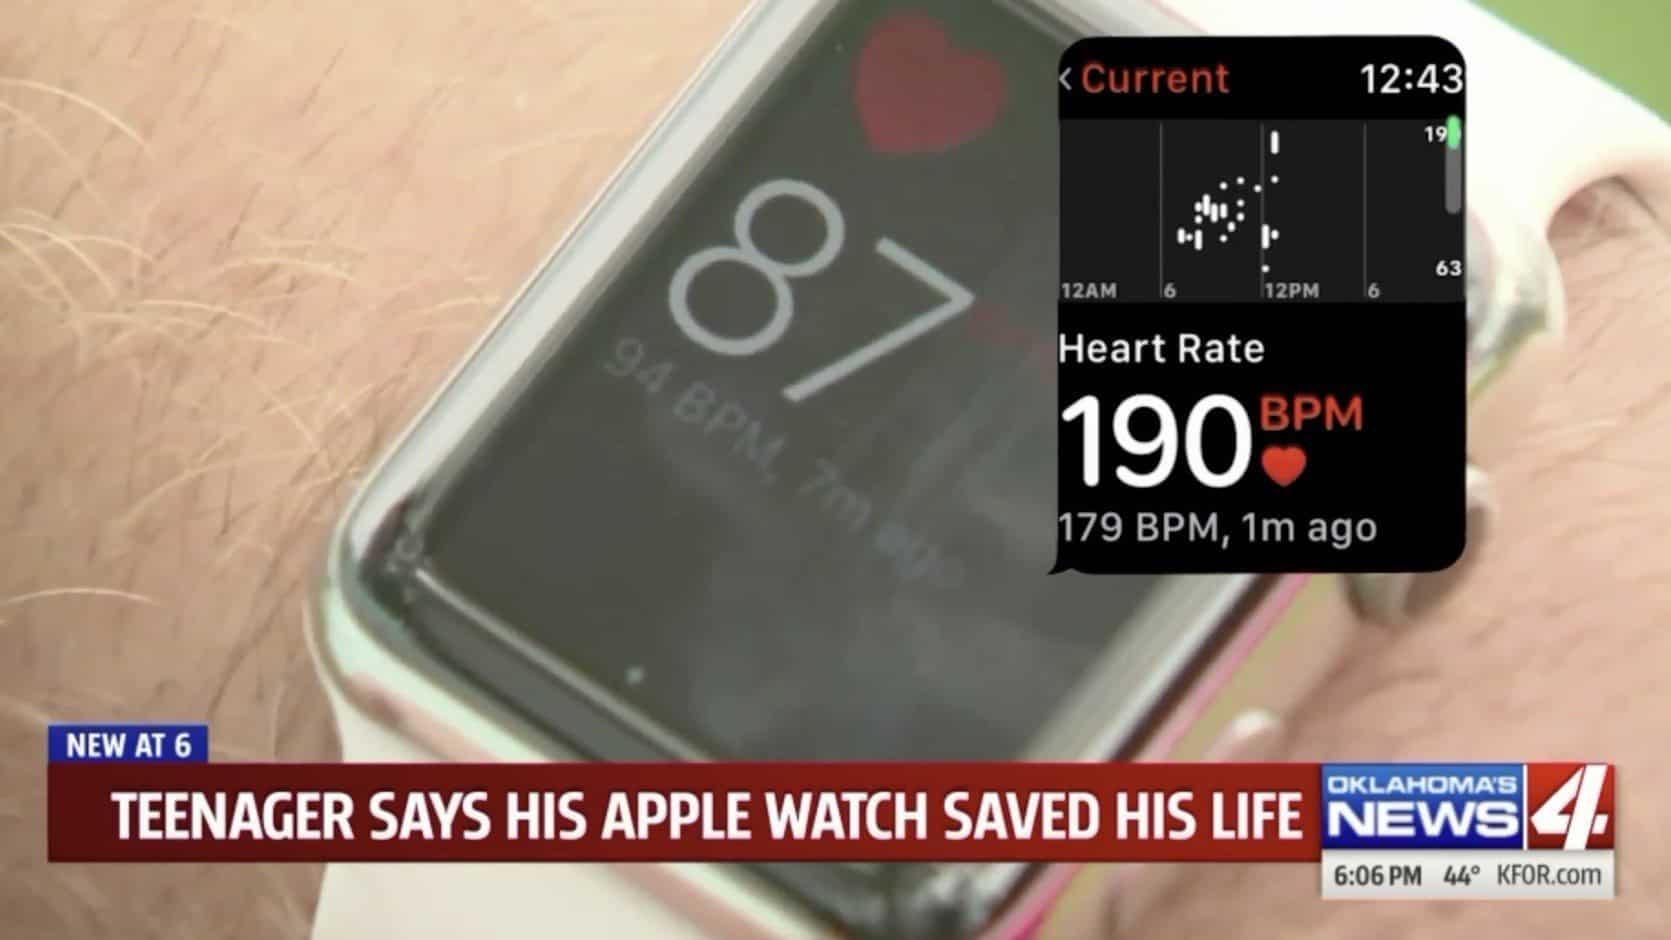 Apple Watch Credited for Saving 13-Year Old in Oklahoma